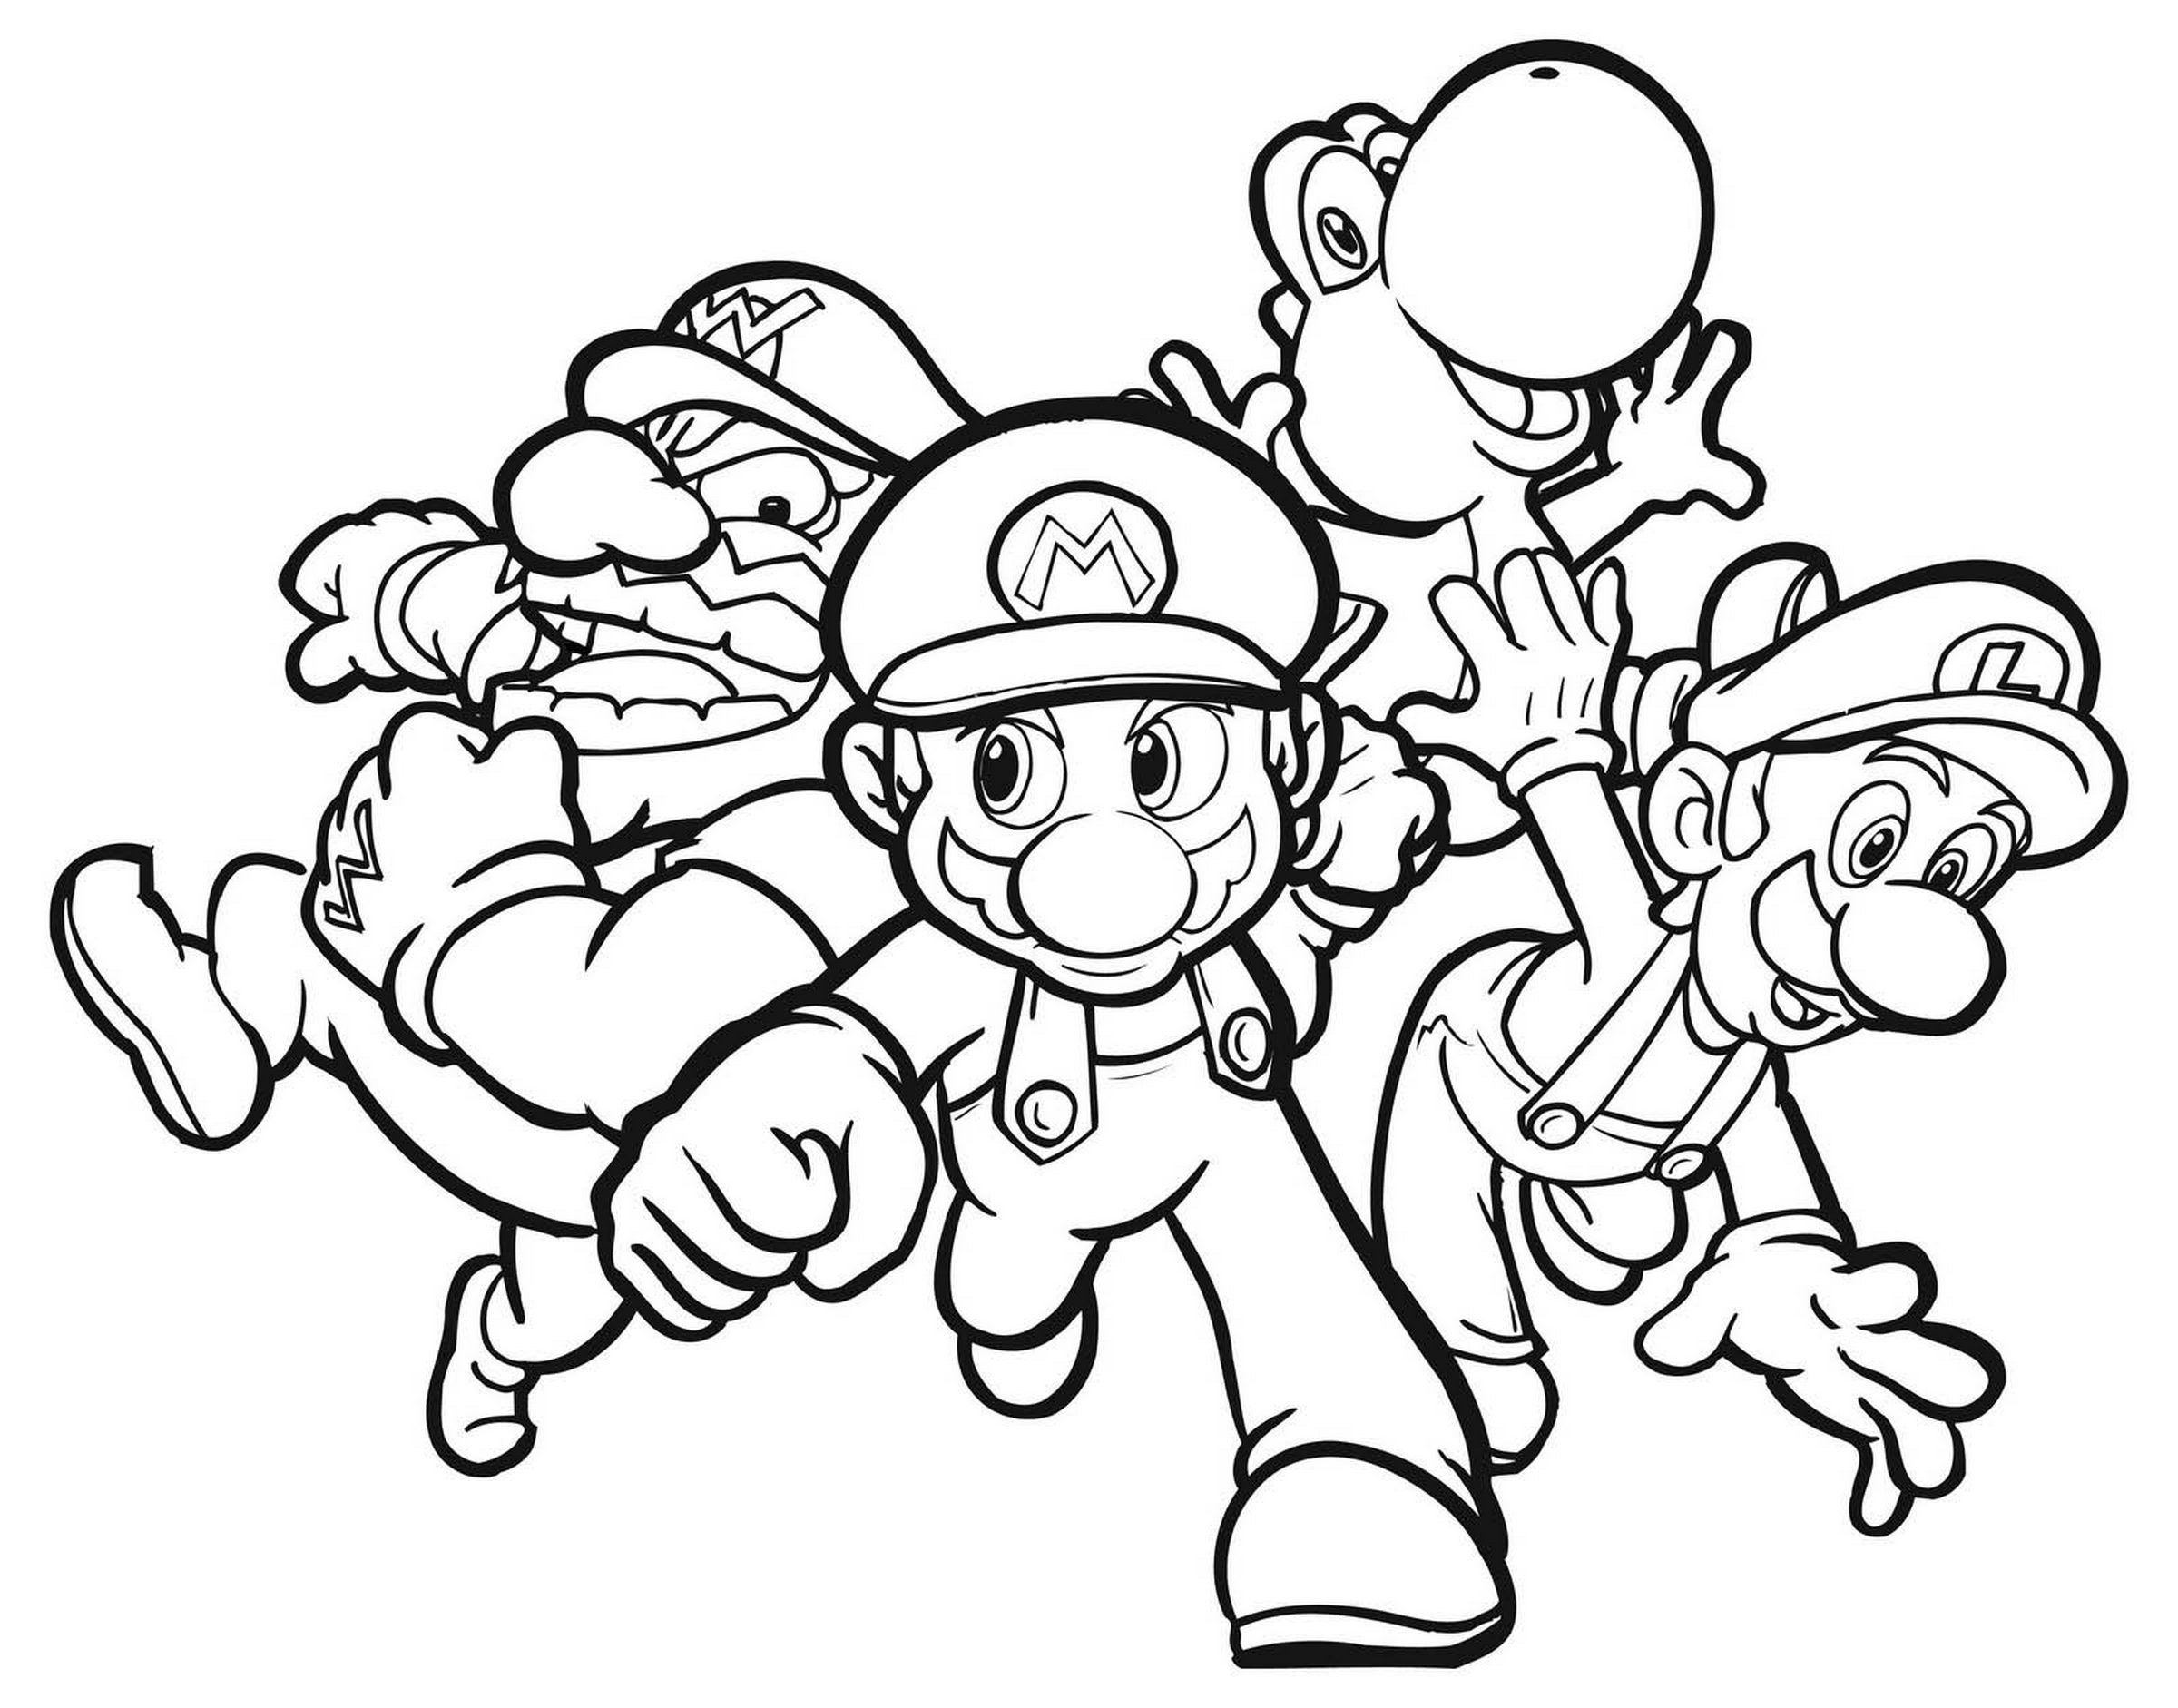 1000 images about free coloring pages on pinterest pokemon